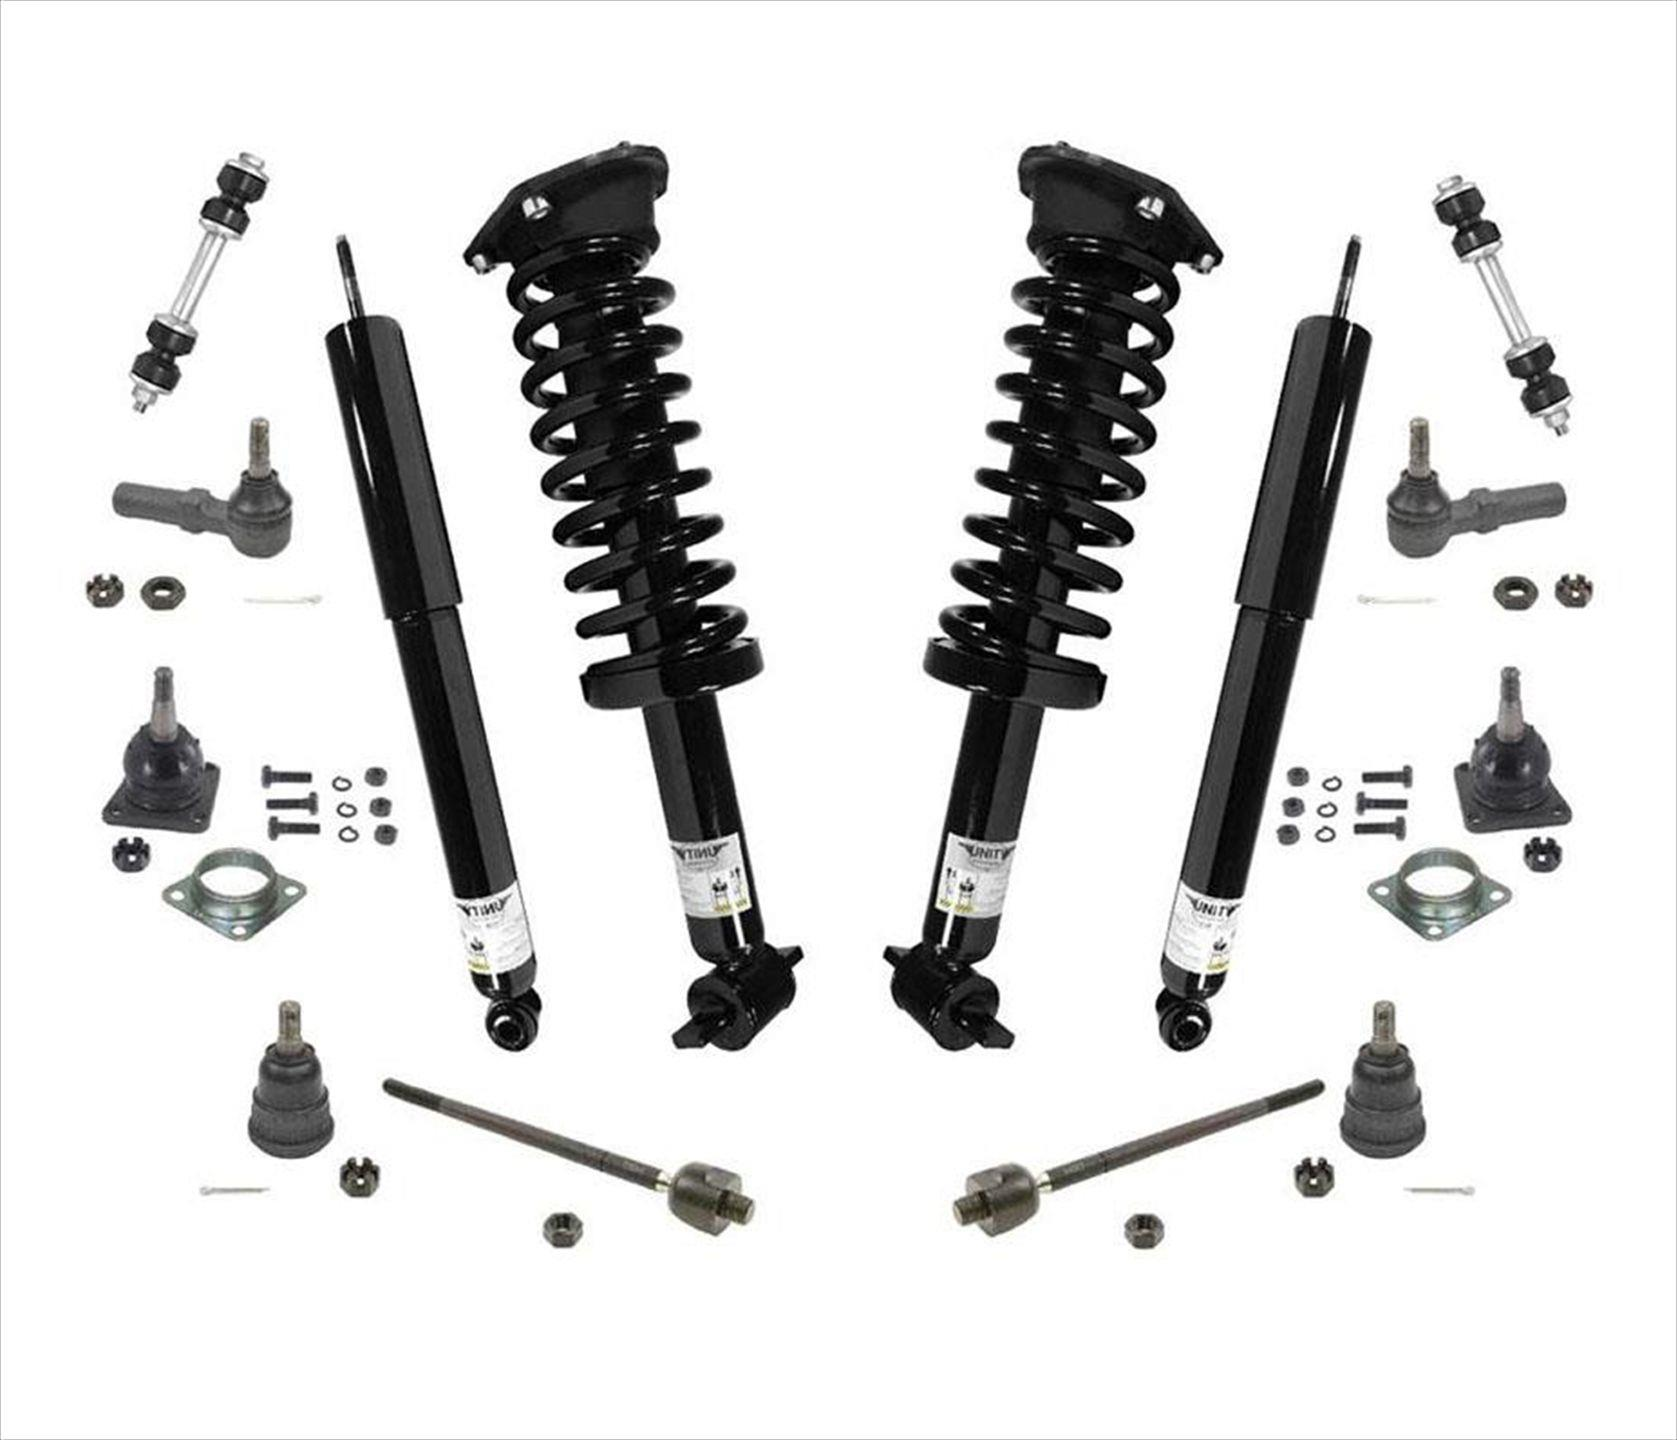 Ap Front Struts Amp Chassis Parts Fits For Chevrolet Camaro